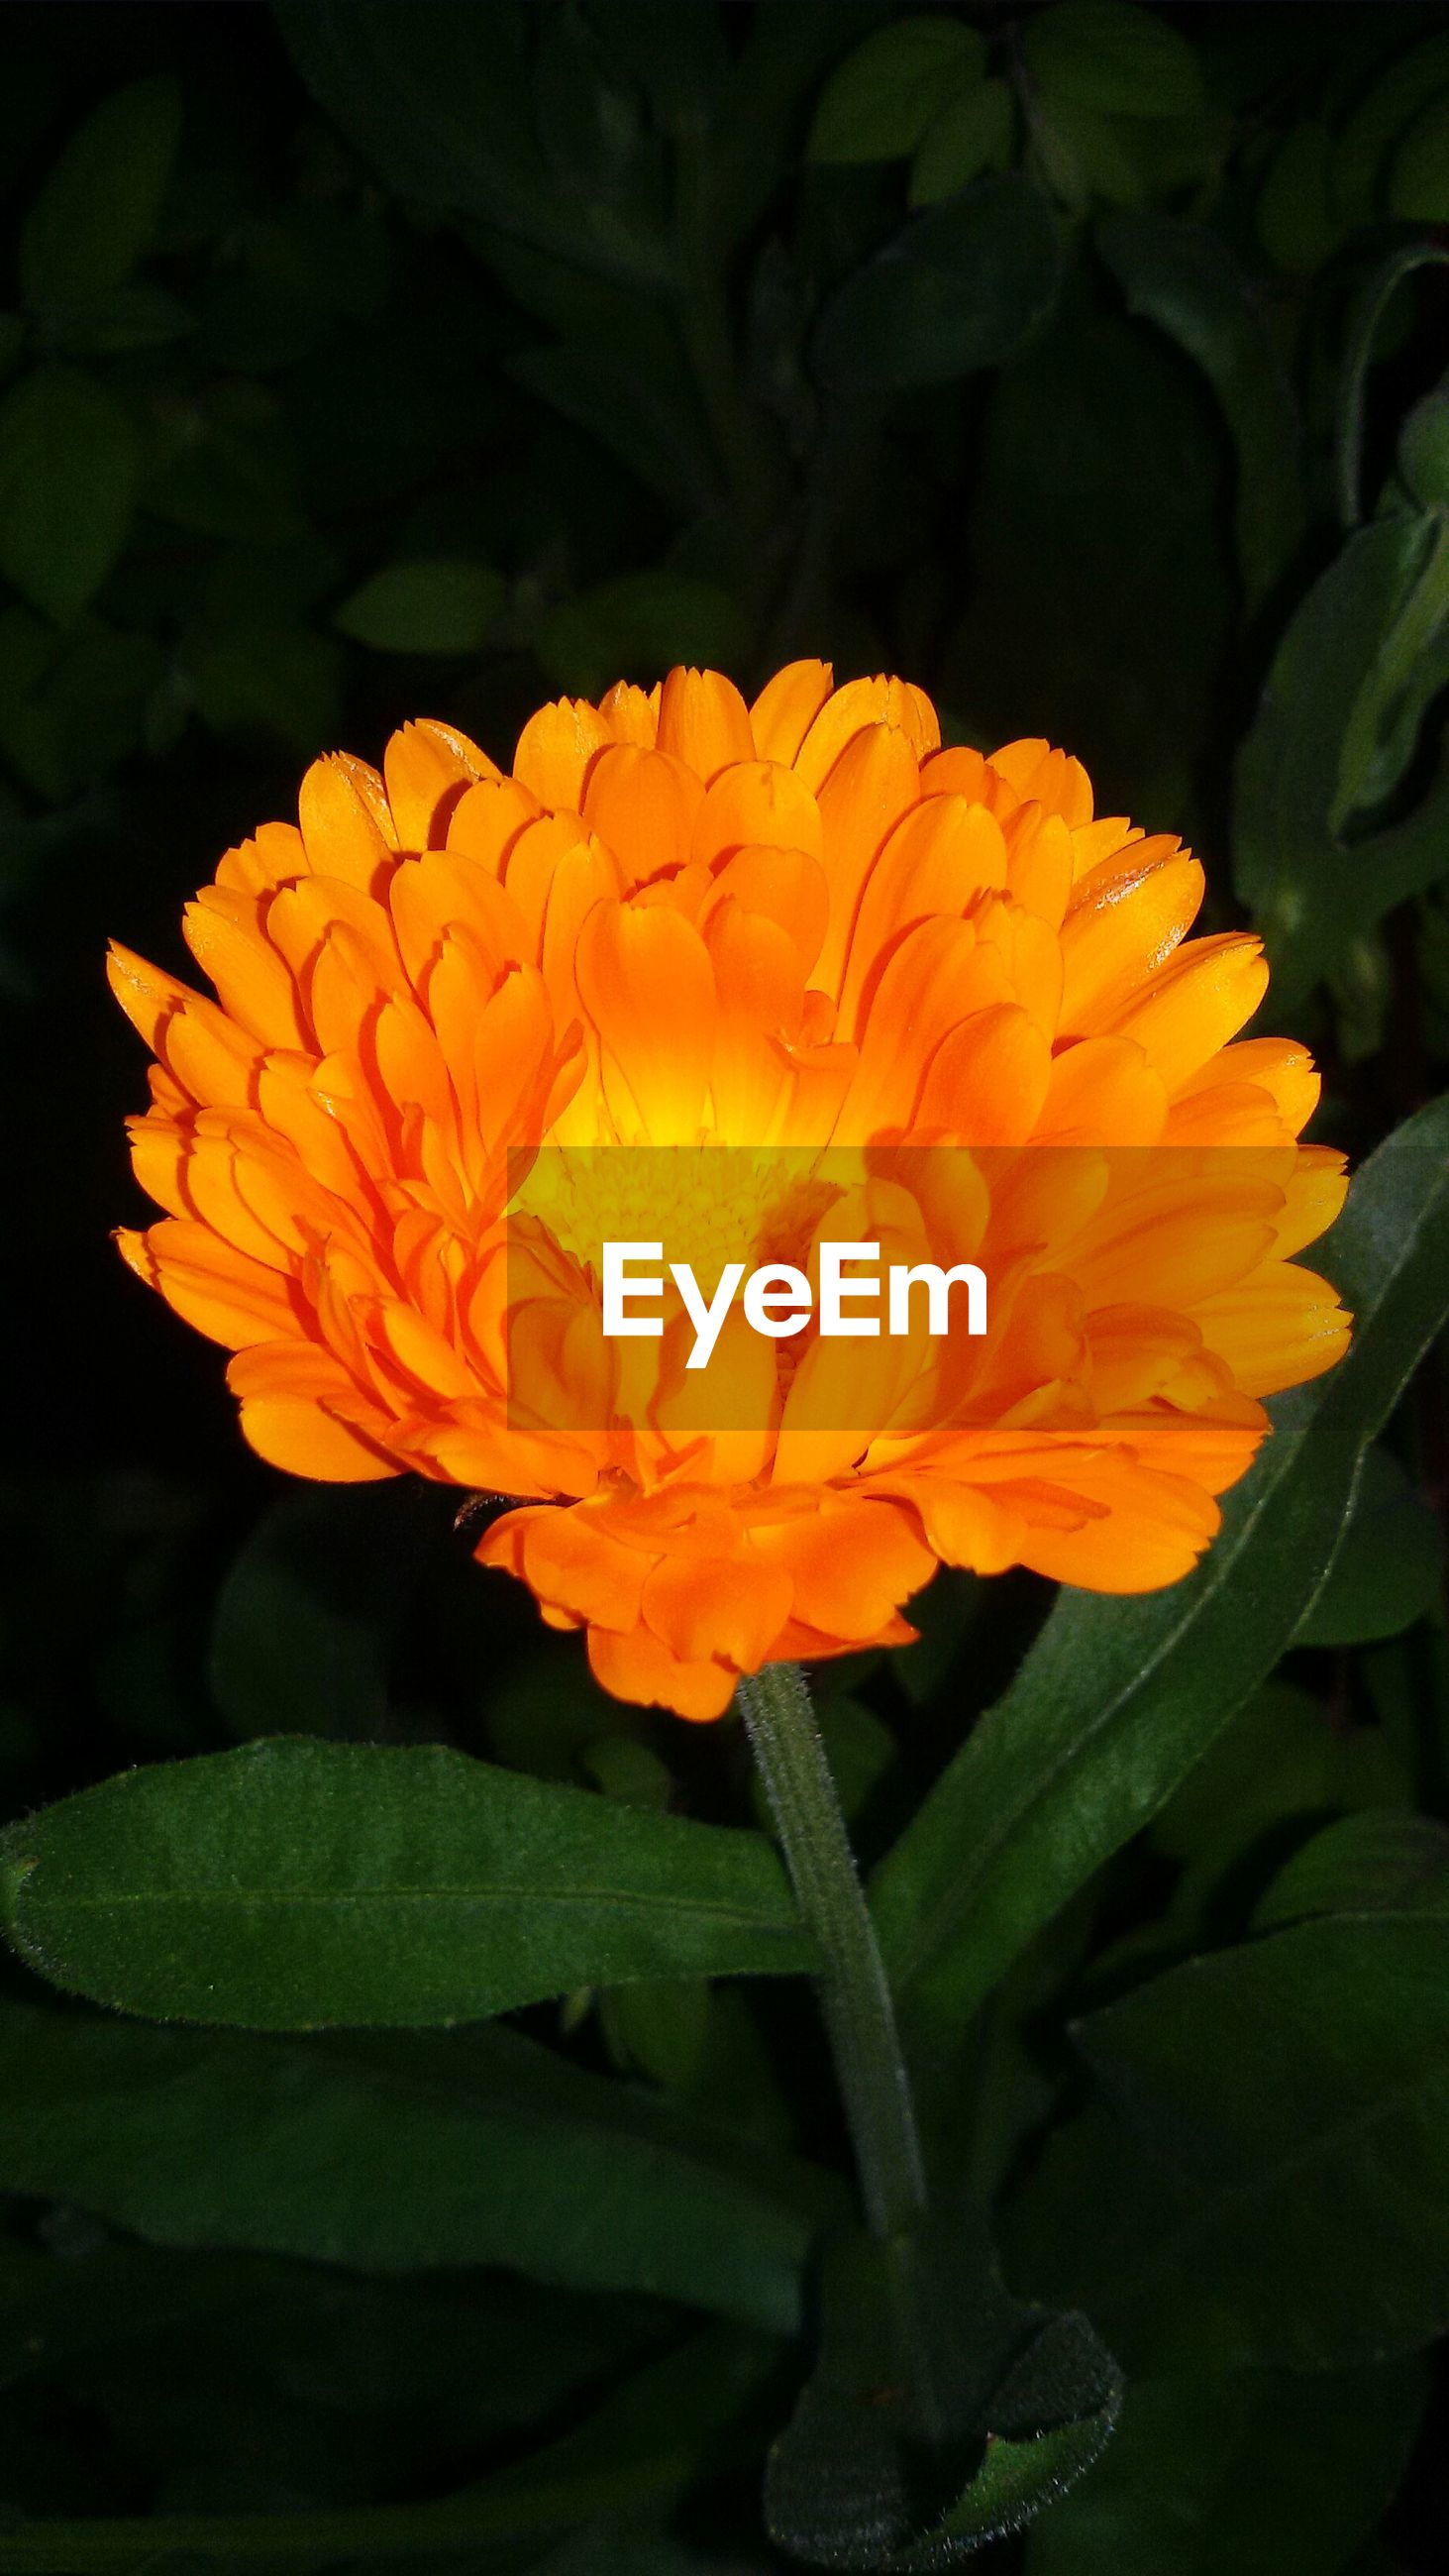 flower, petal, freshness, flower head, fragility, growth, beauty in nature, blooming, nature, orange color, yellow, plant, close-up, single flower, leaf, in bloom, blossom, red, botany, focus on foreground